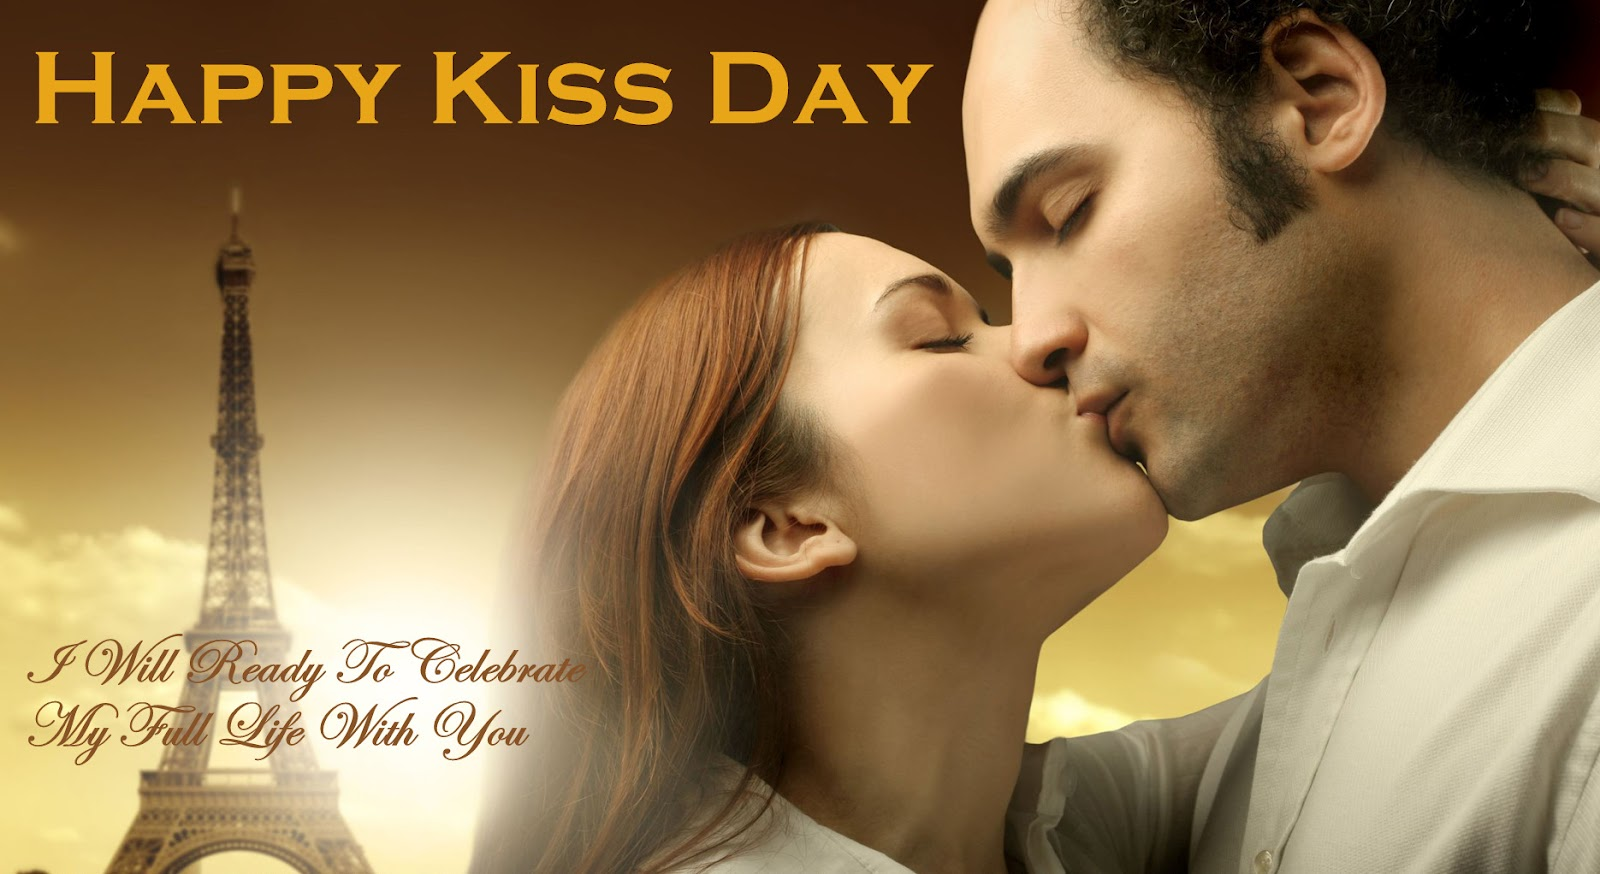 Happy Kiss Day 2018 HD Image For Girlfriend & Boyfriend